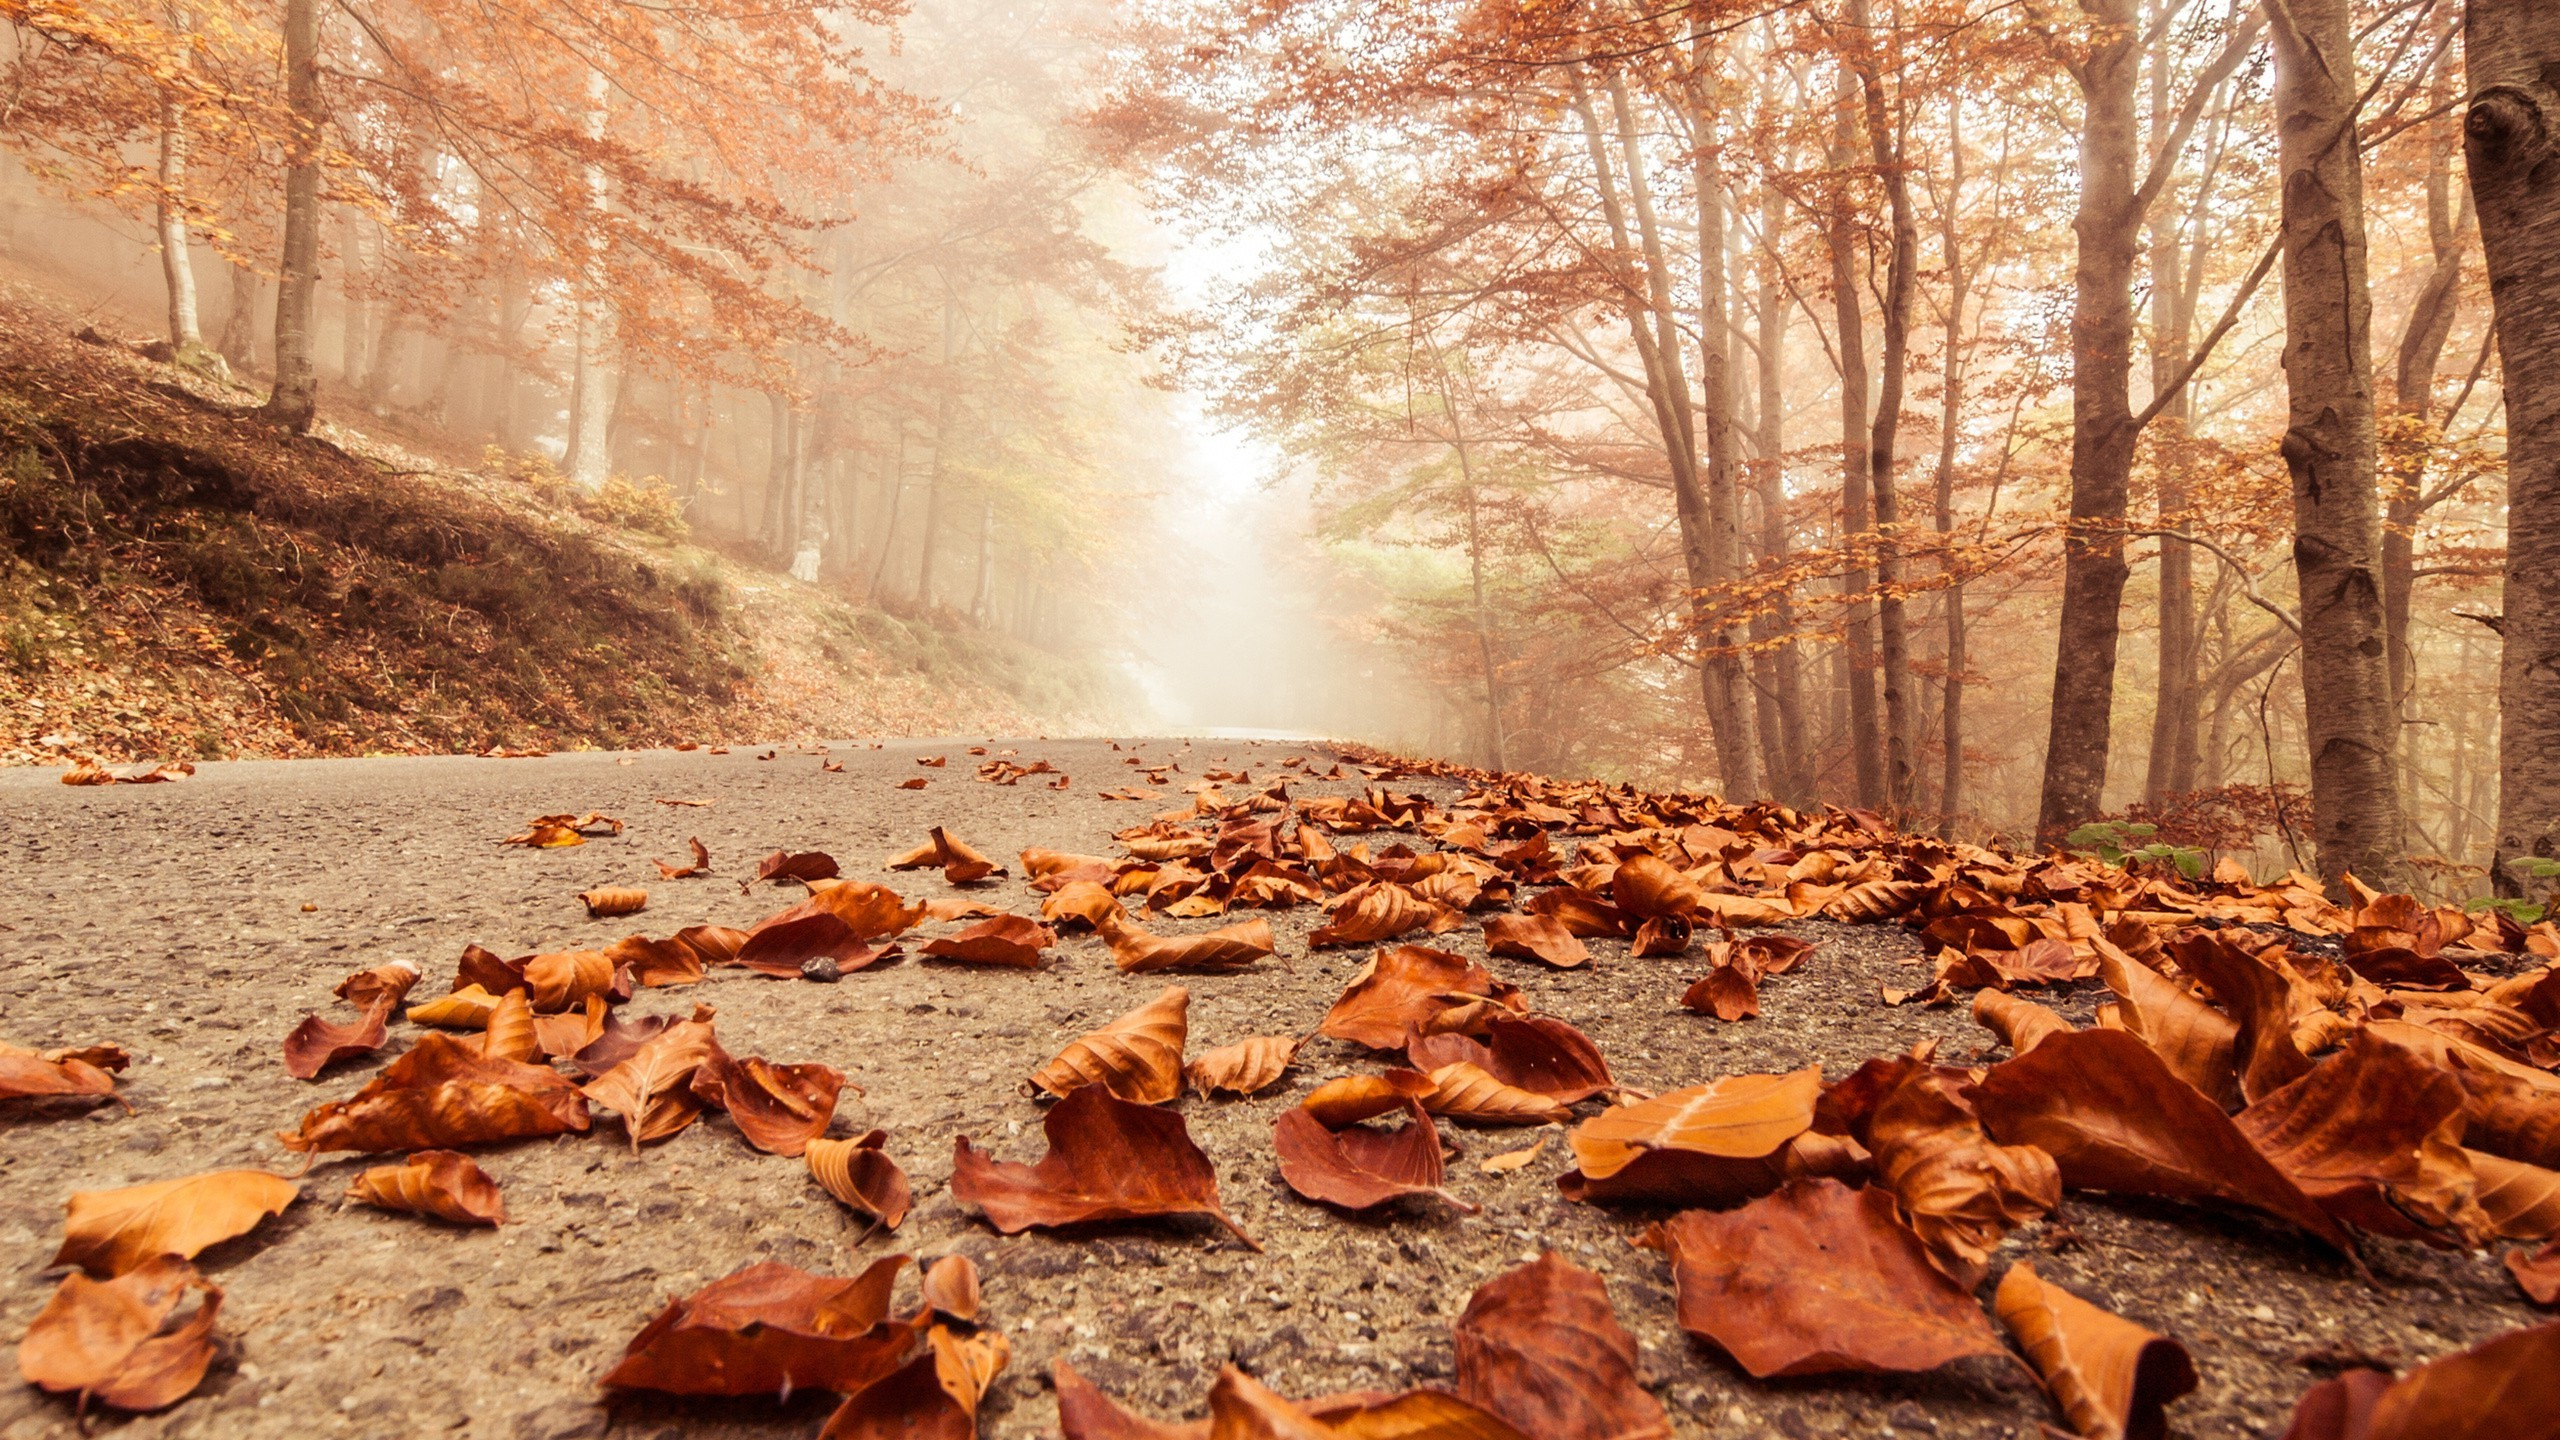 Car In Forrest Hd Wallpaper Leaves Fall On Road Hd Nature 4k Wallpapers Images